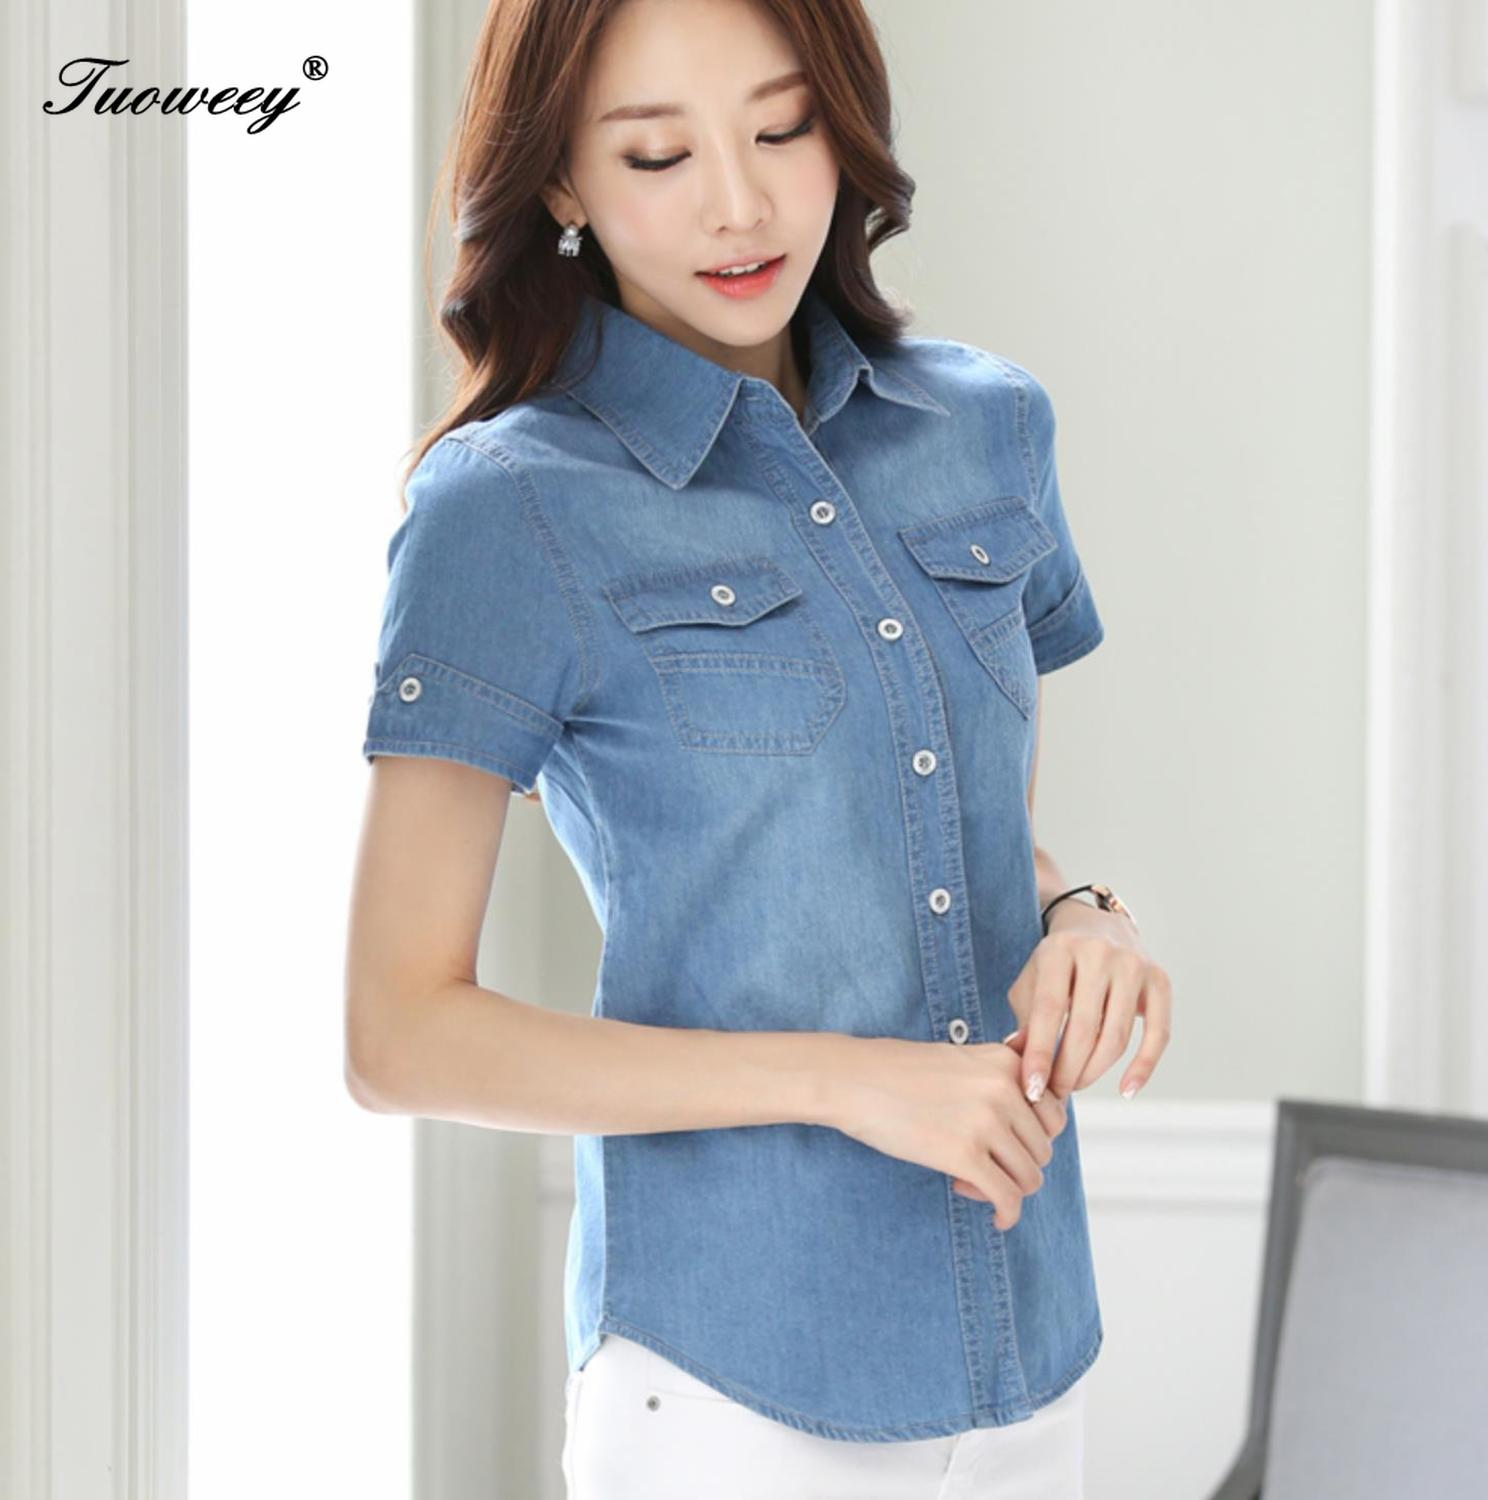 Cotton 2019 Spring Fashion Loose Denim Women Blouses Short Sleeve Shirts Women Tops Vintage Jeans Blouse Female Casual Clothing